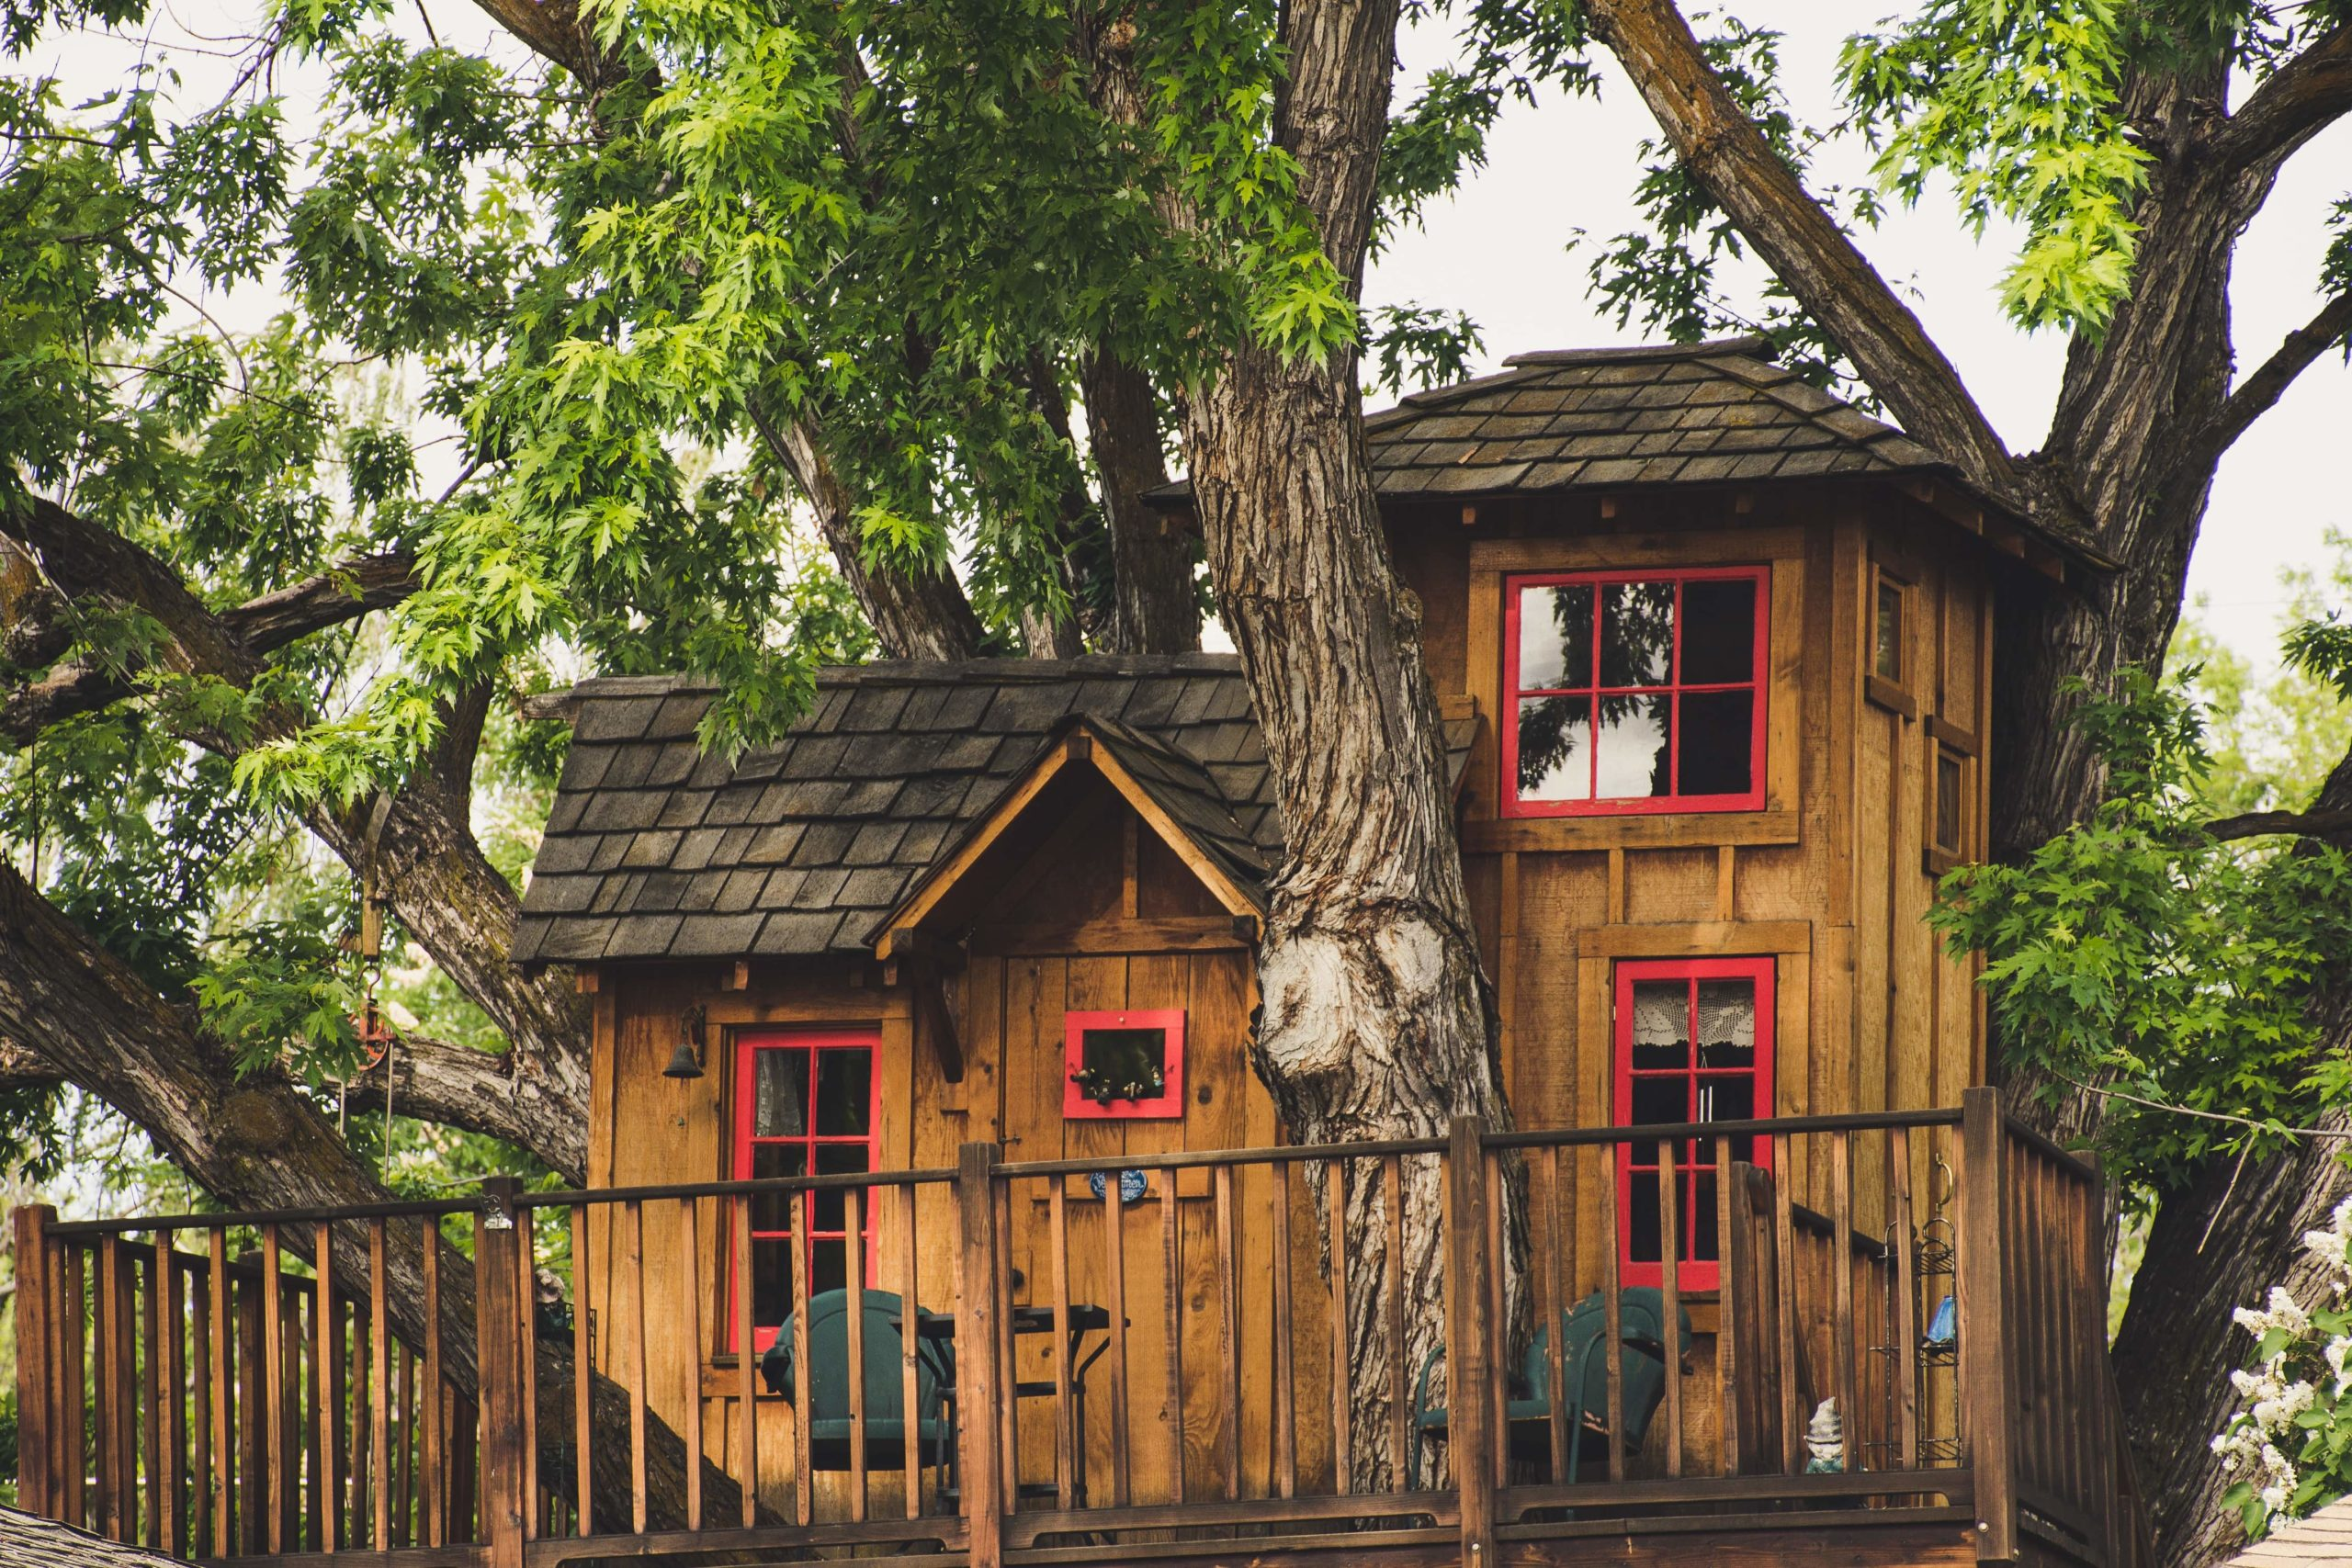 brown-wooden-house-near-trees-1084362-min